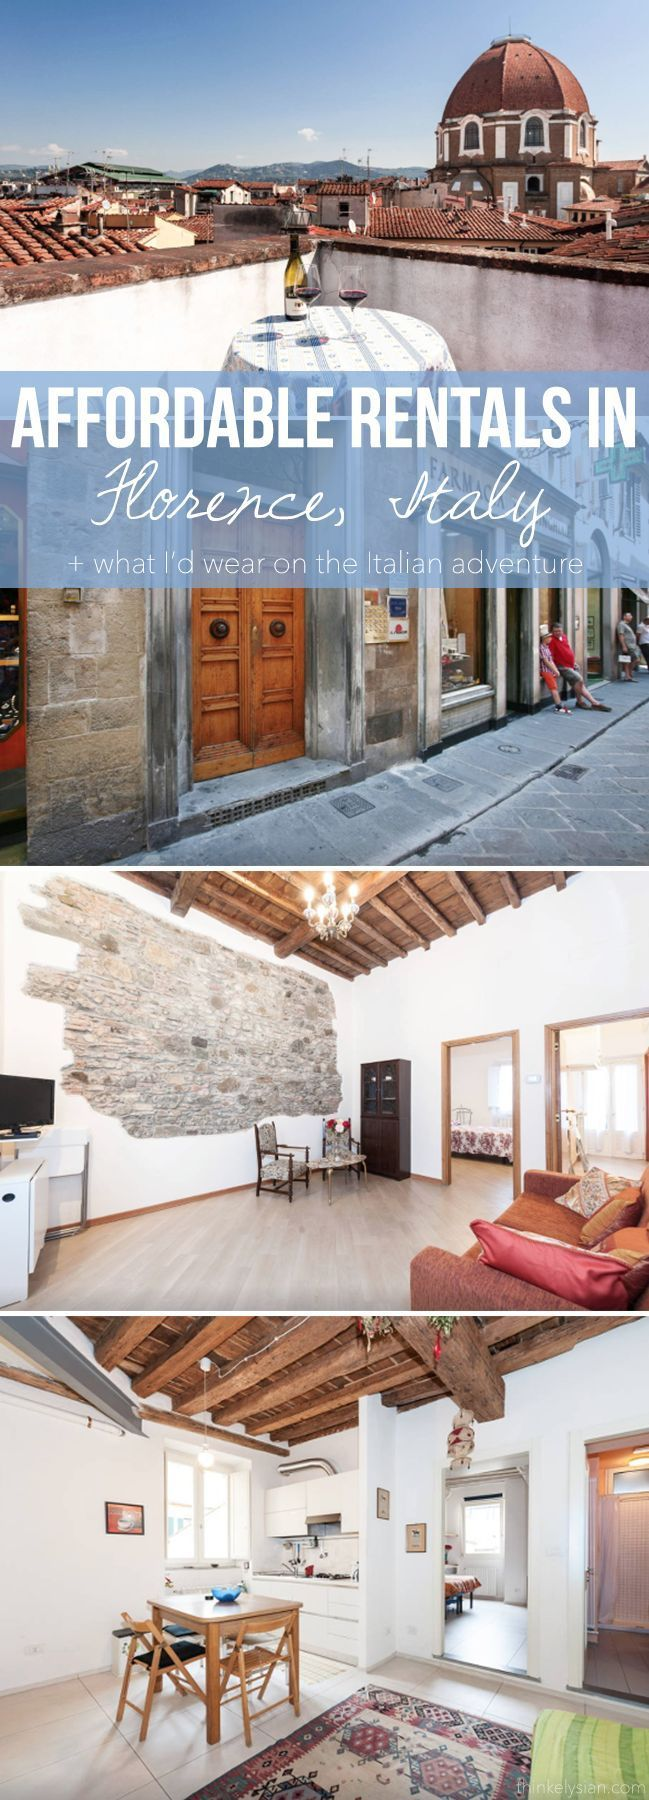 Affordable rentals in Florence, Italy + What I'd wear on the Italian vacation // thinkelysian.com